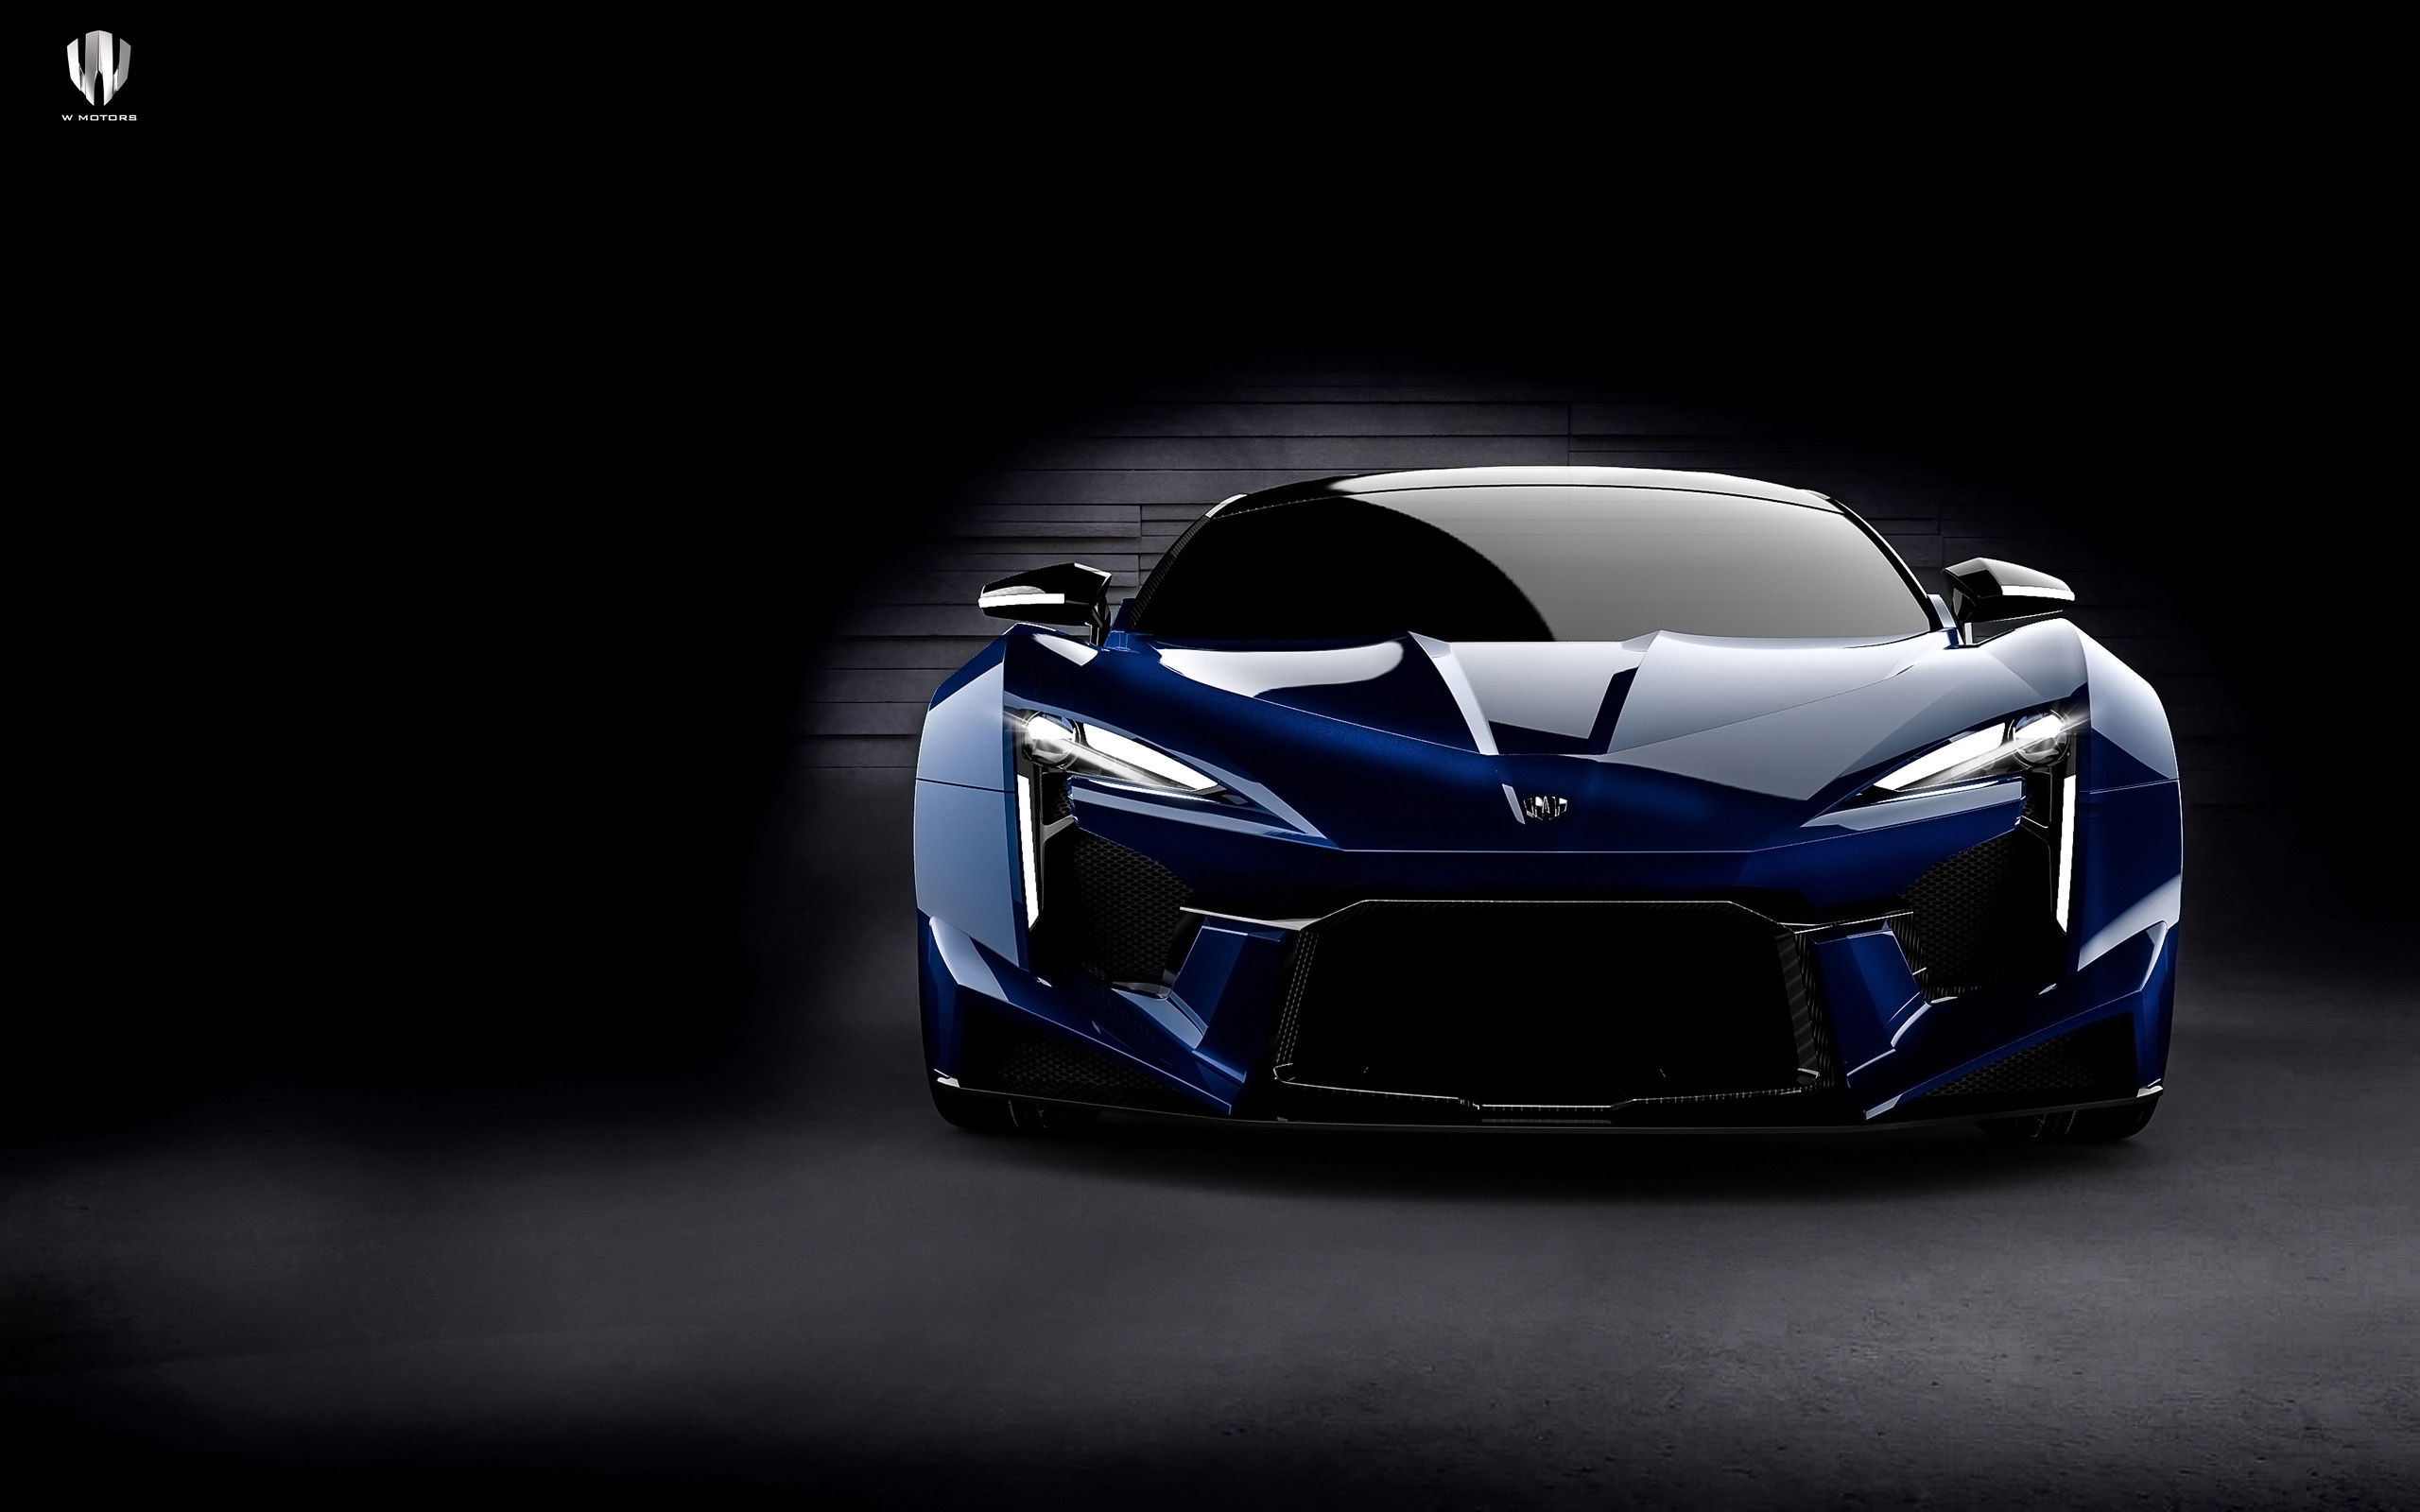 Wallpaper Android Hd Sport Car: 2016 W Motors Fenyr SuperSport Wallpaper